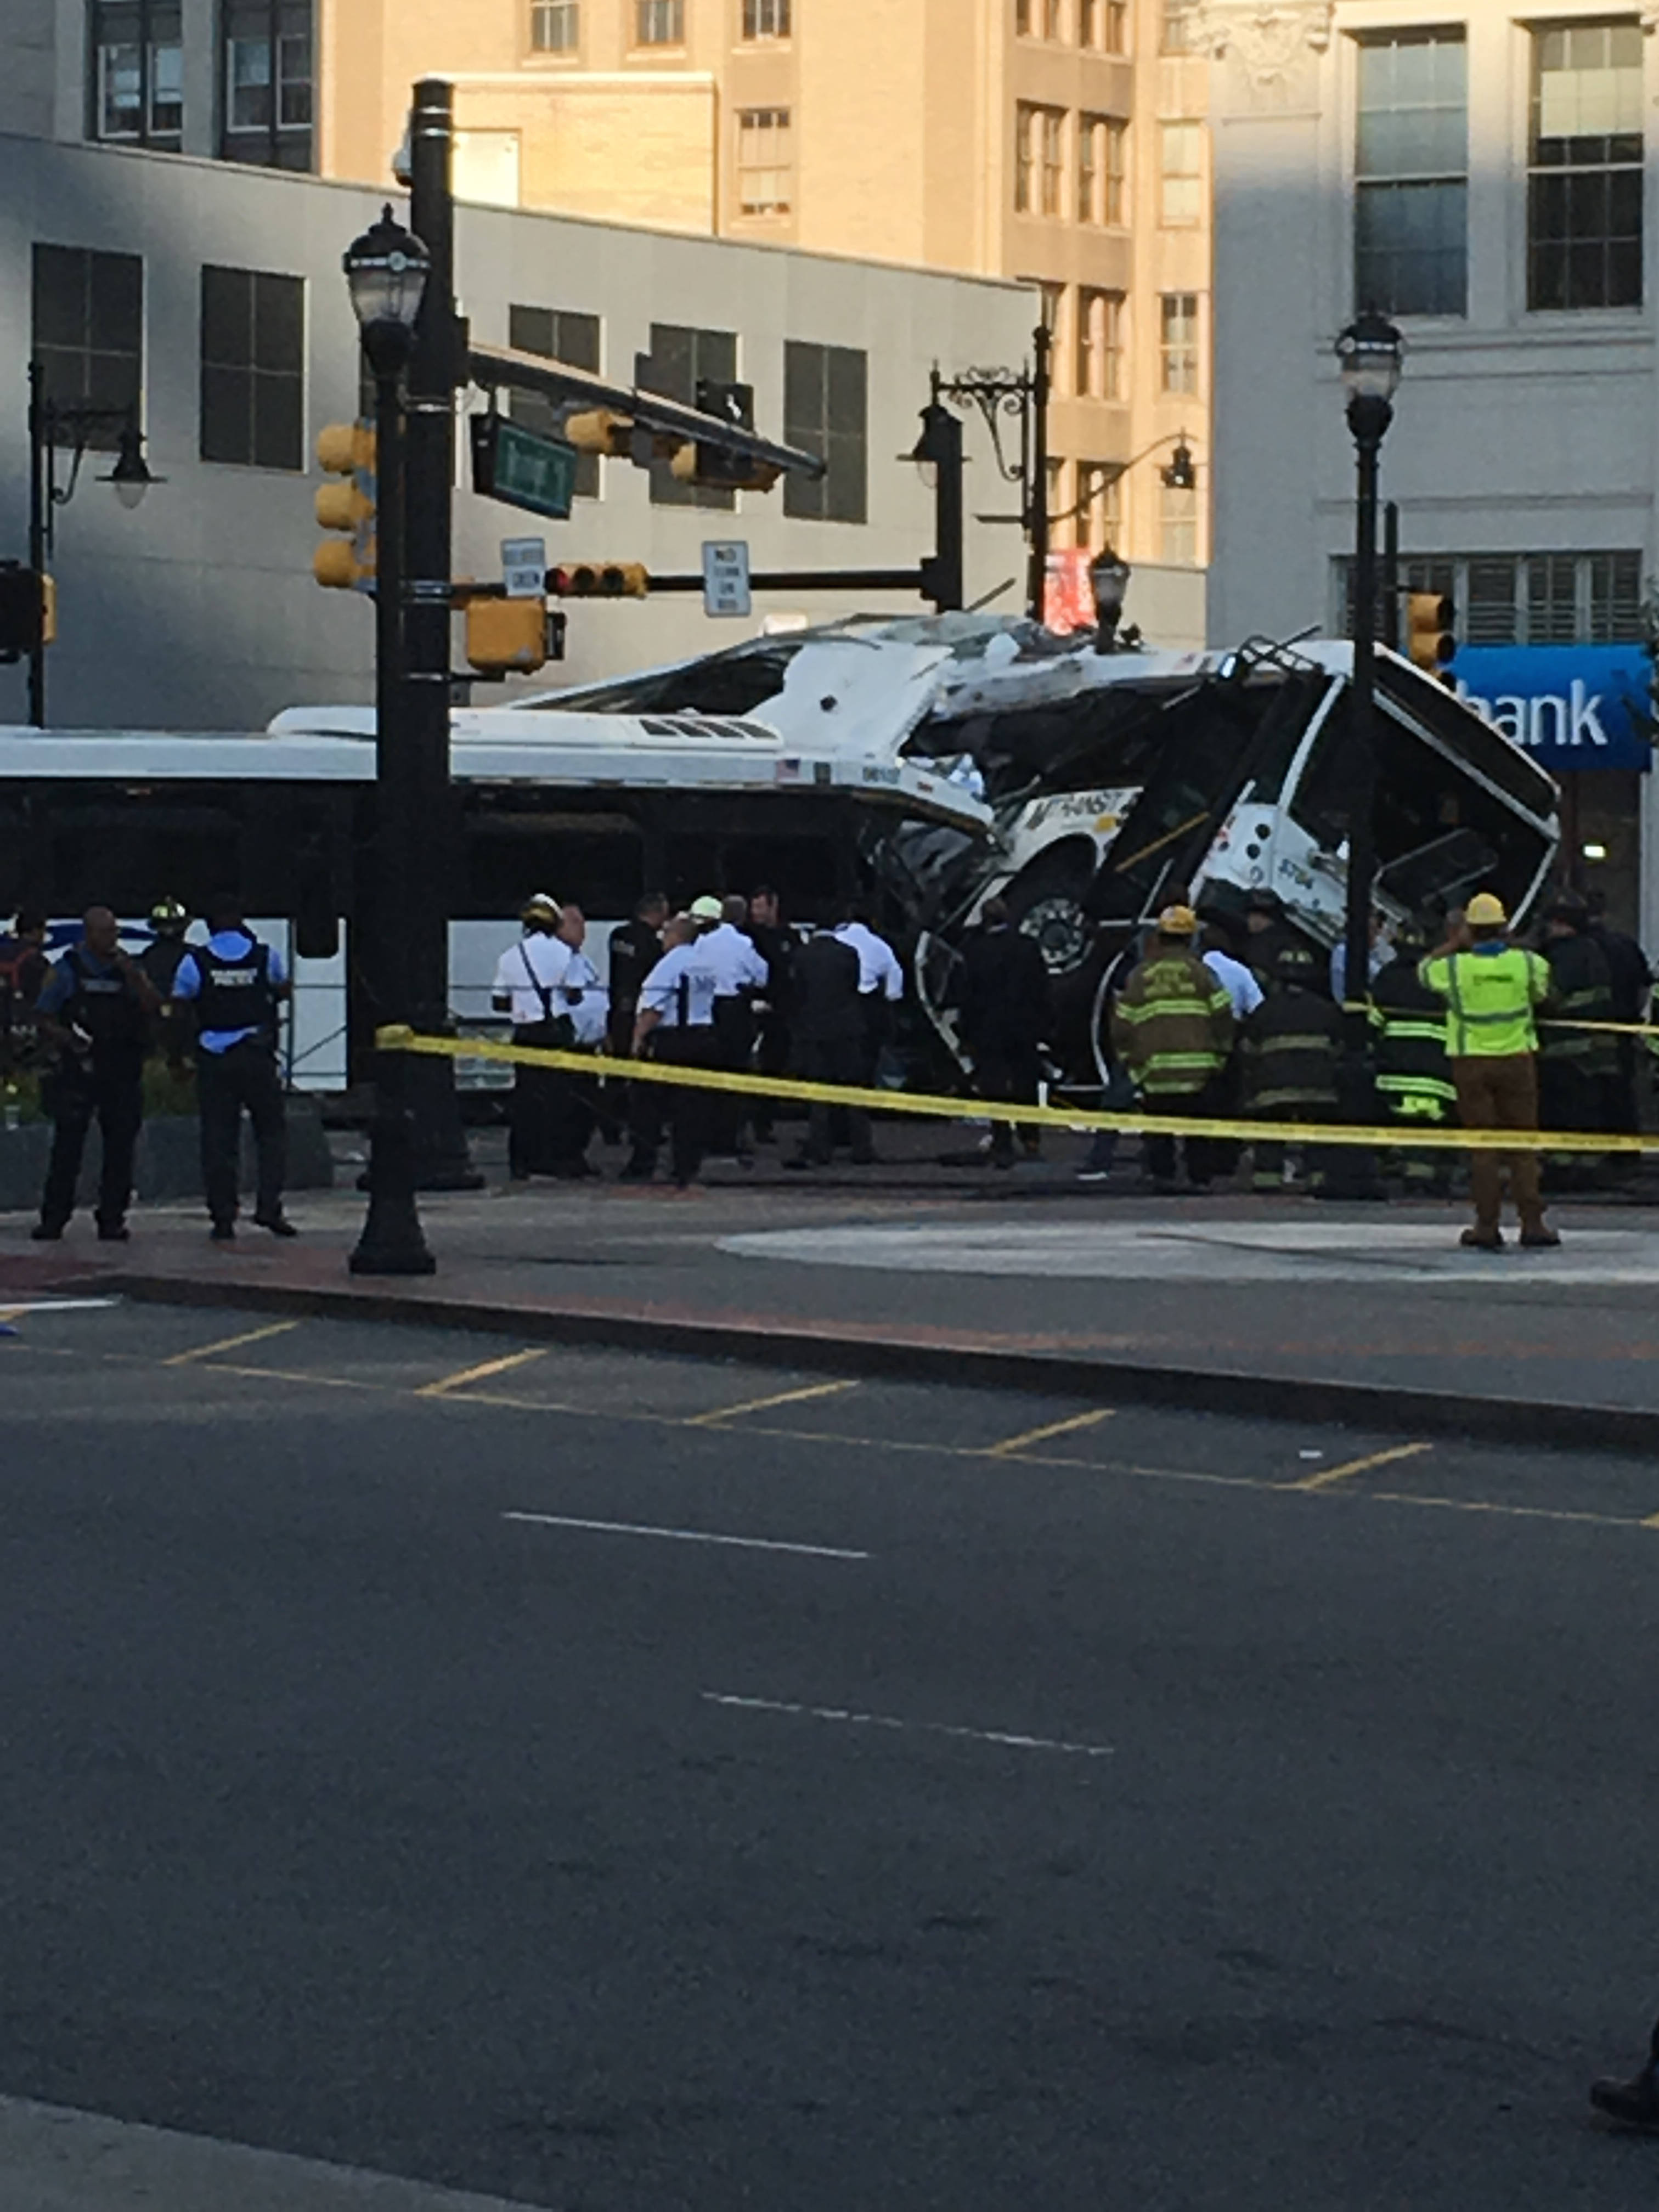 28c471e6944c08e3791d_Bus_crash_4.jpg